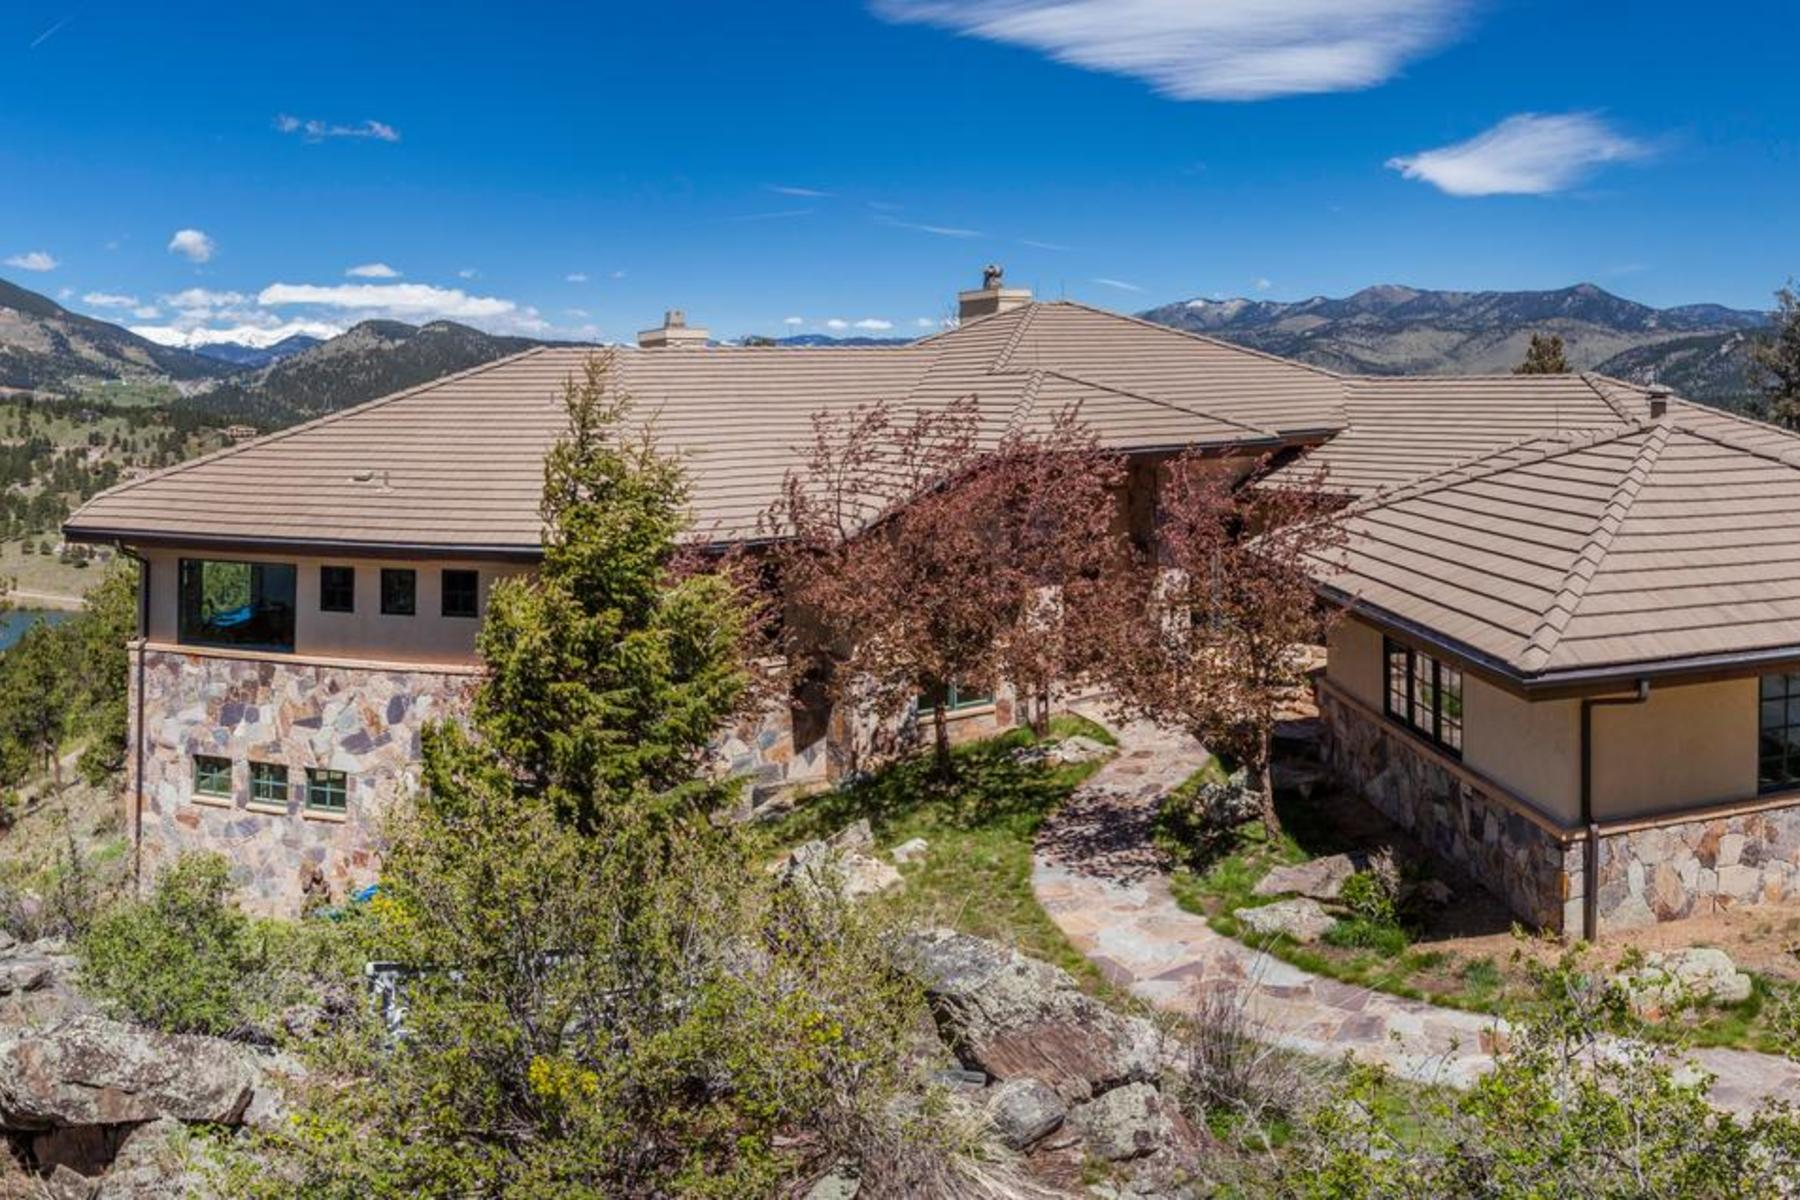 Single Family Homes for Sale at Modern & Bright! 414 Humphrey Drive Evergreen, Colorado 80439 United States